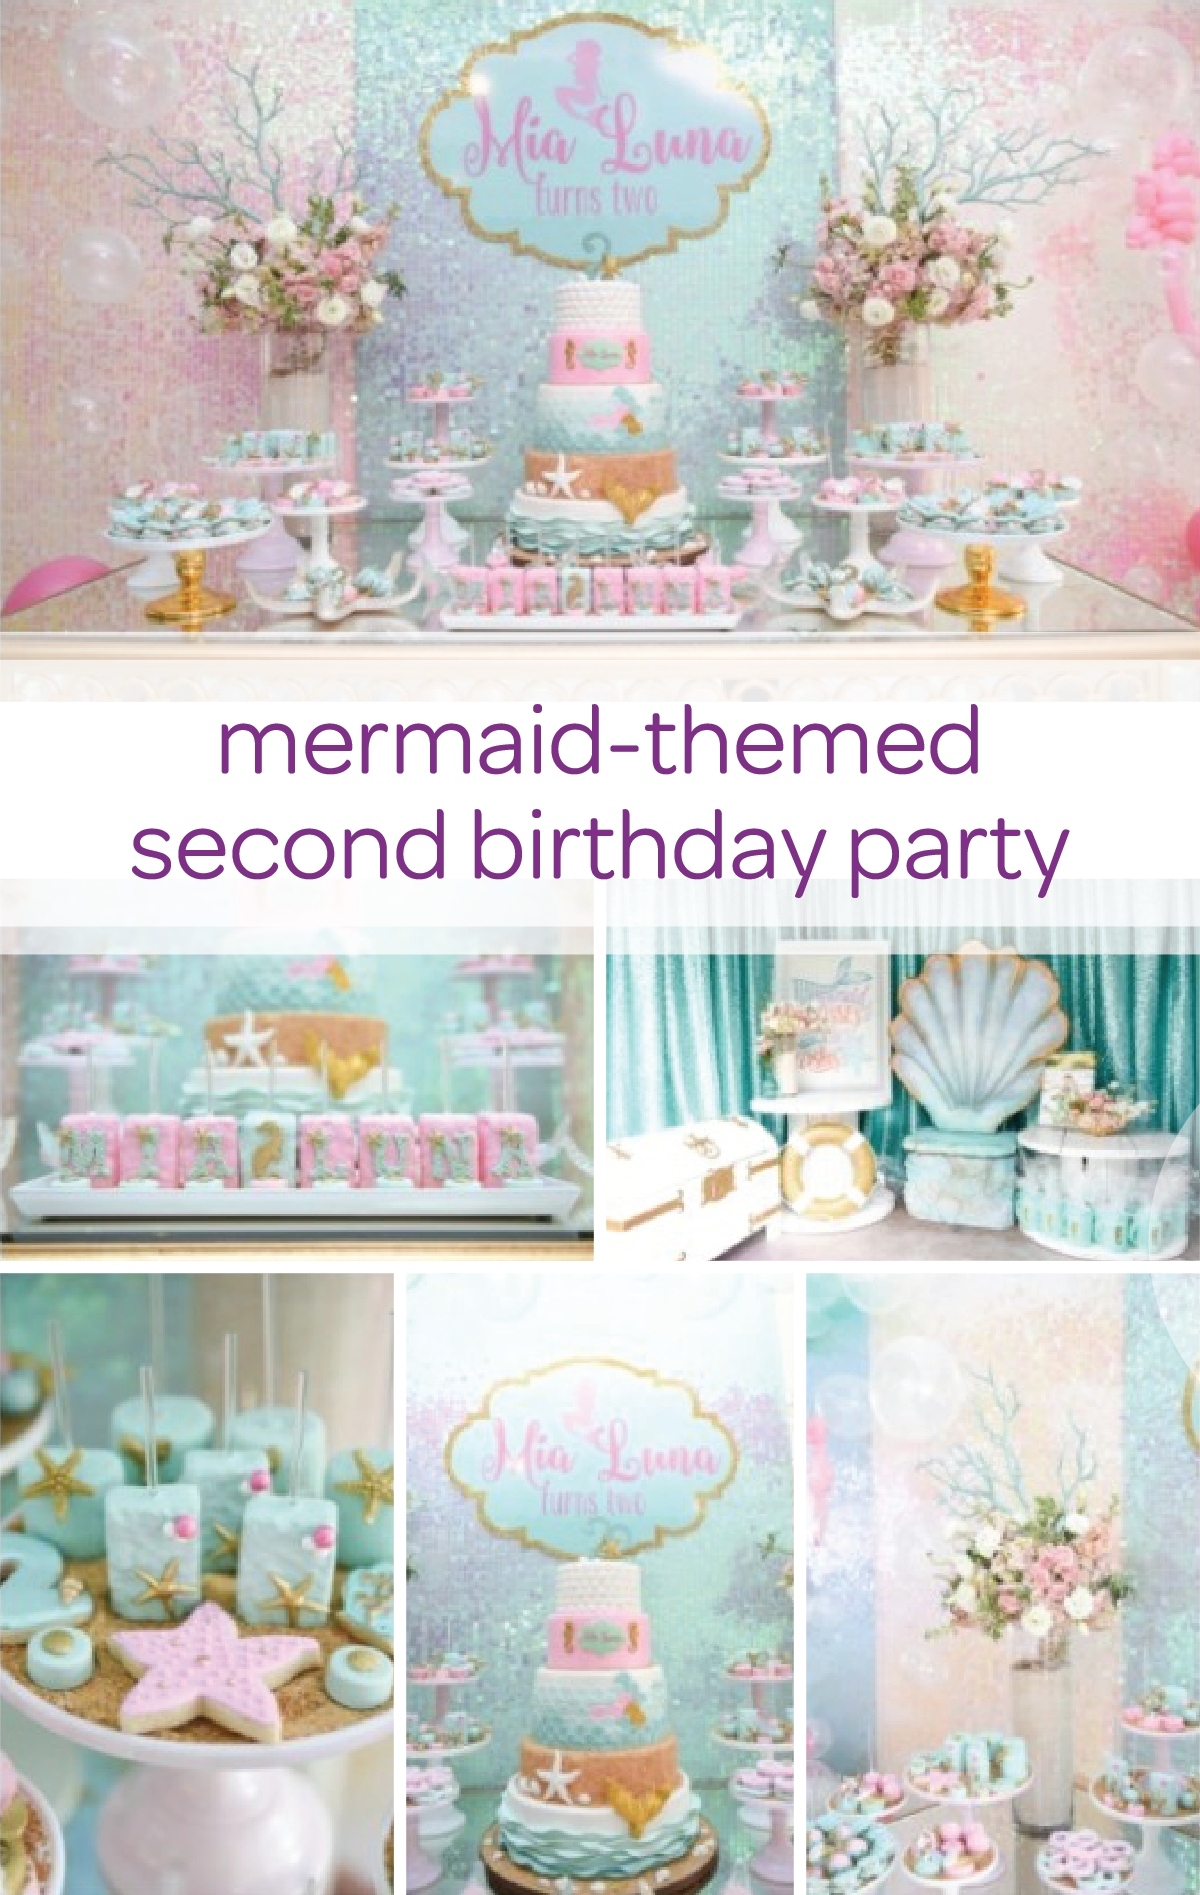 10 Wonderful Birthday Party Ideas For Little Girls mermaid birthday party unique party themes birthday party themes 2020